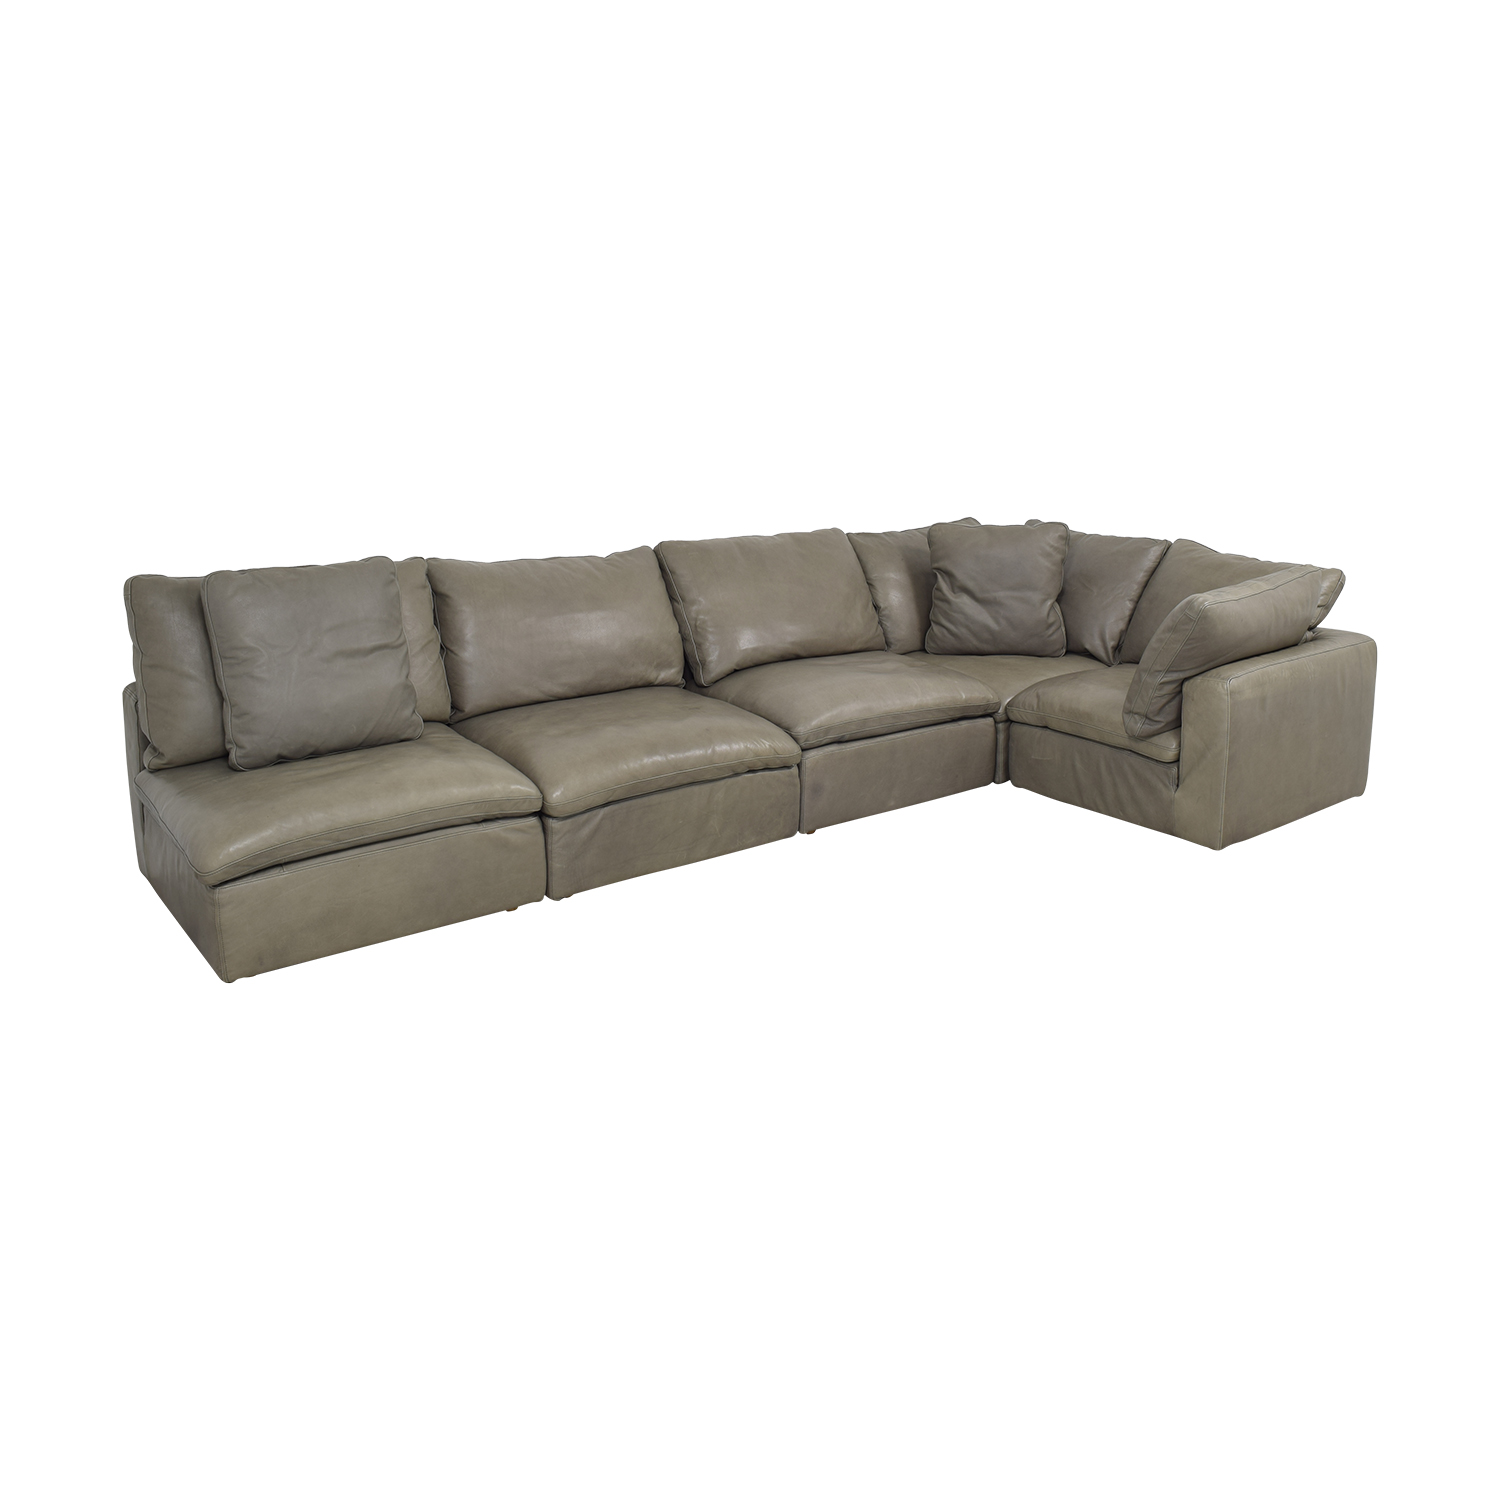 Restoration Hardware Restoration Hardware Cloud Modular Sectional Sofa Sofas